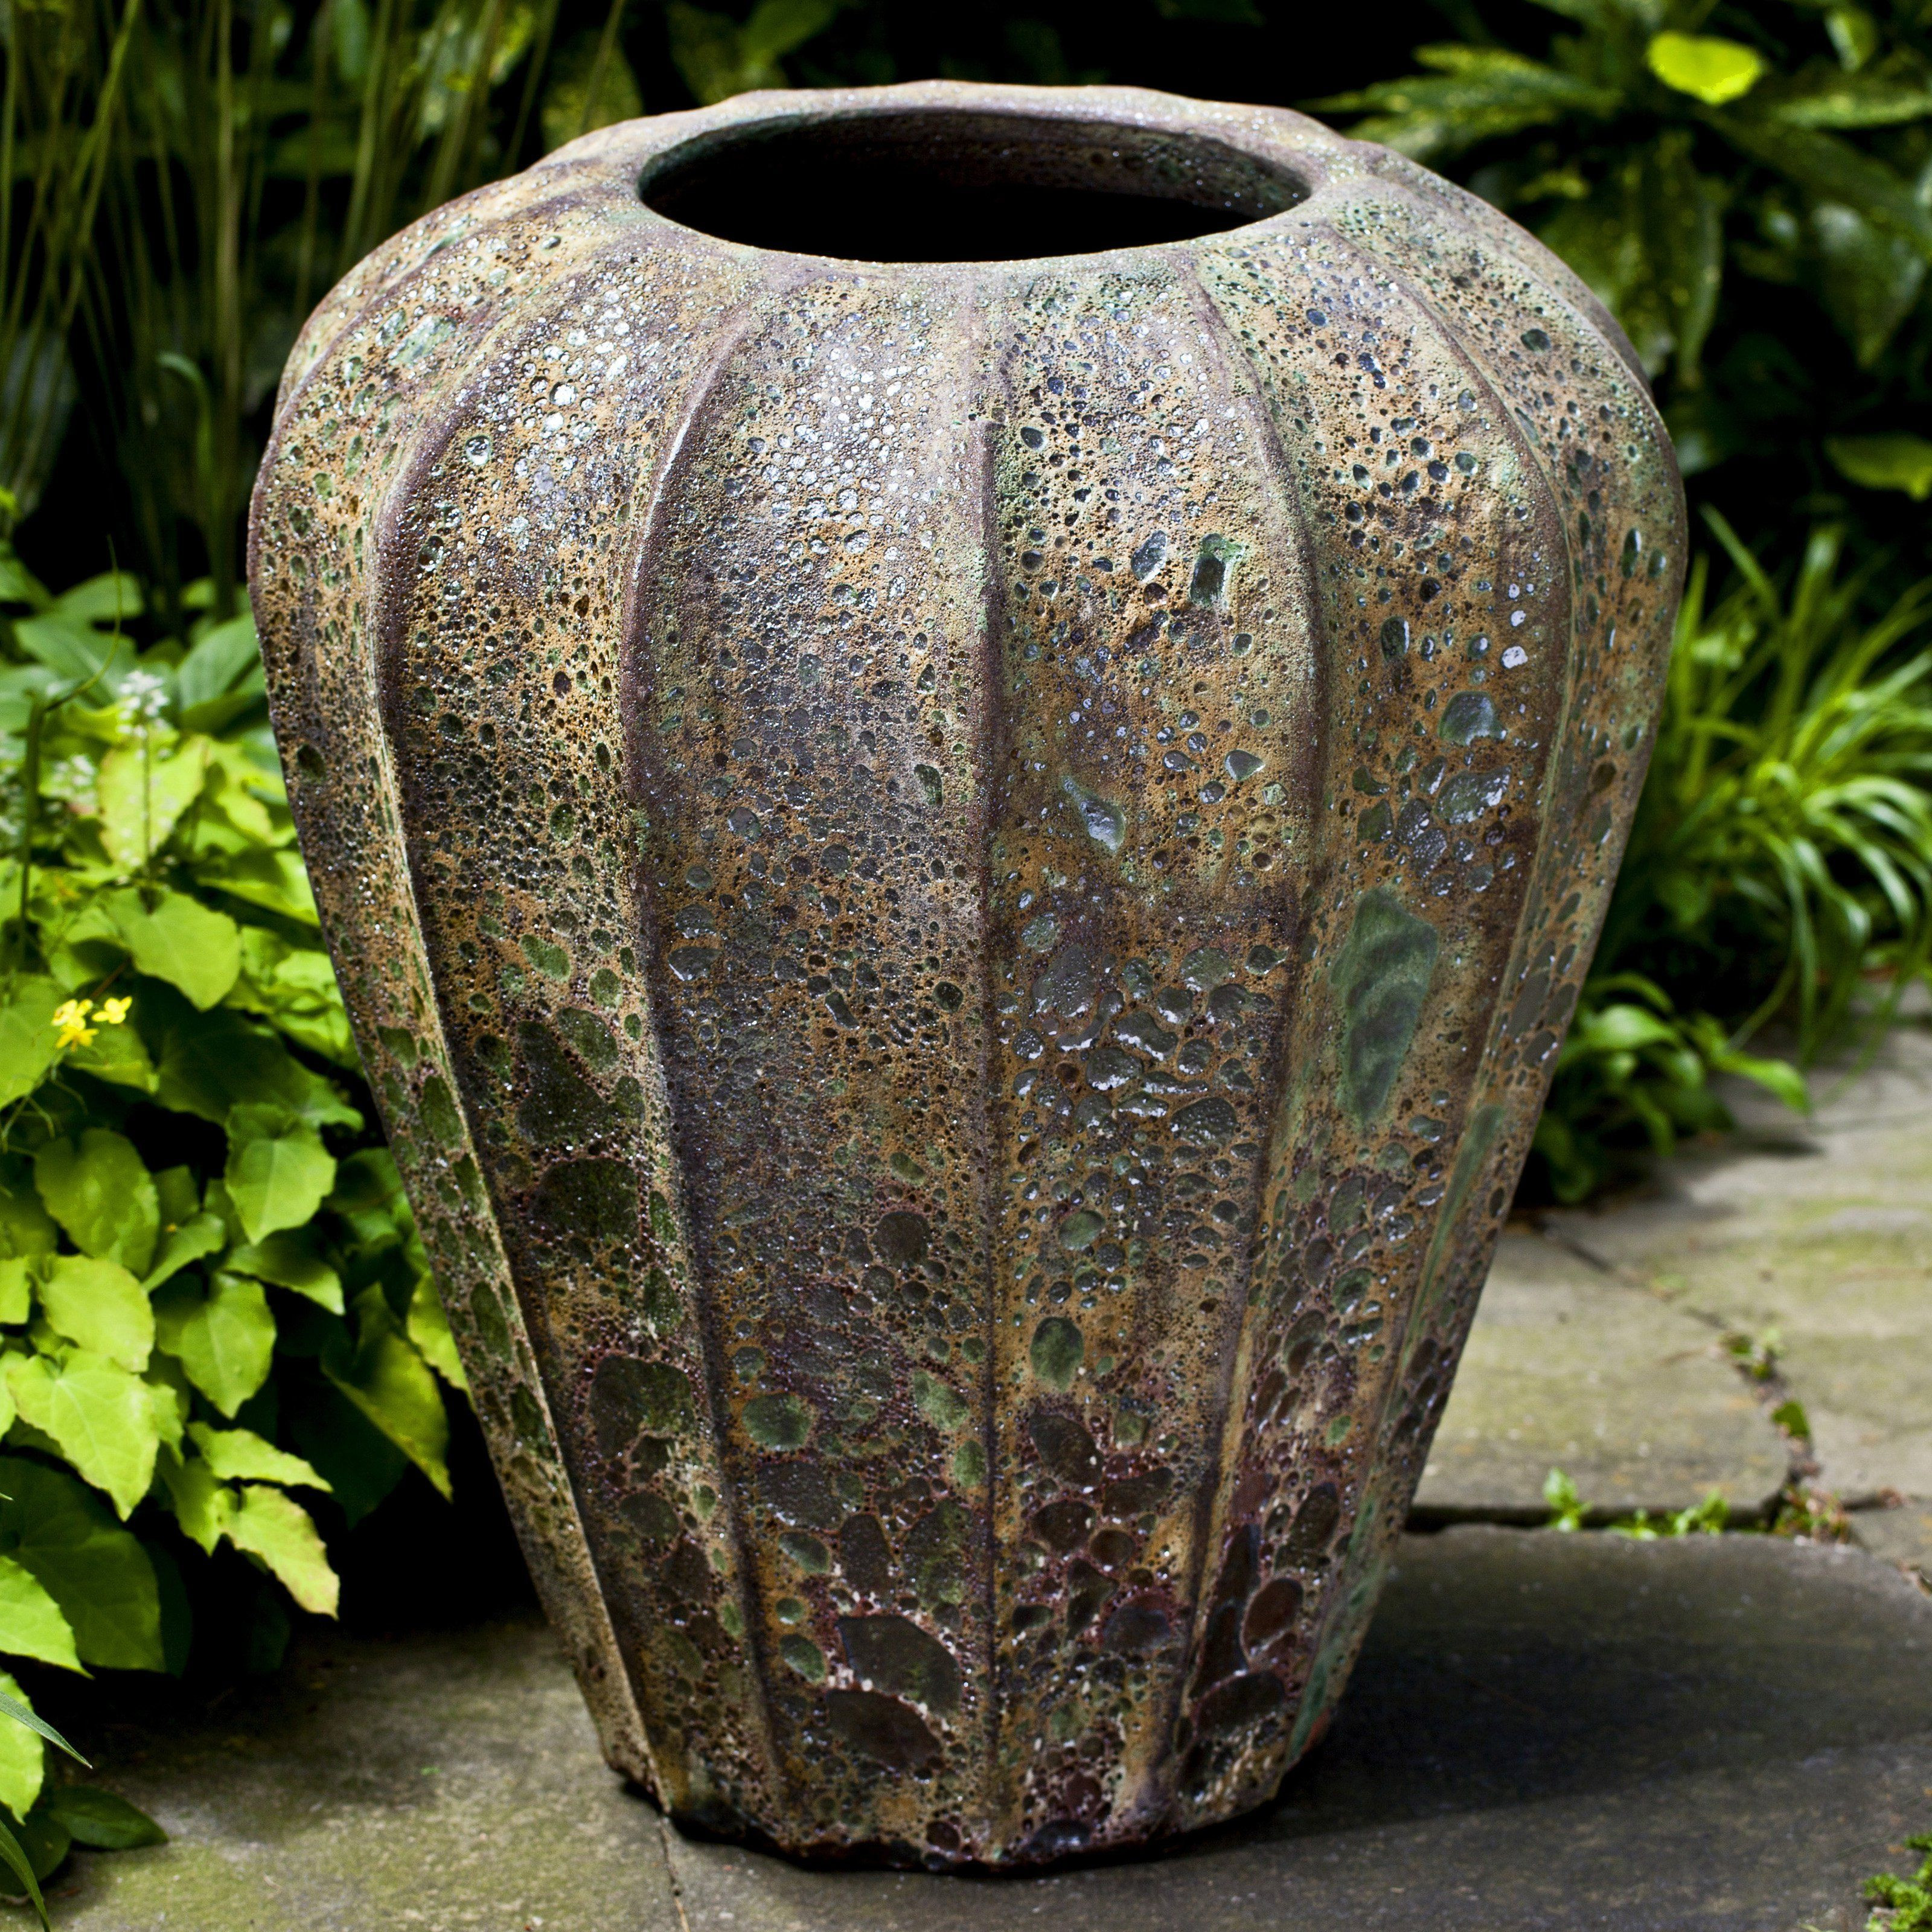 outdoor ceramic vase fountain of campania international balareas jar angkor green mist from with regard to campania international balareas jar angkor green mist outstanding terra cotta construction along with distressed detailing on the exterior make this